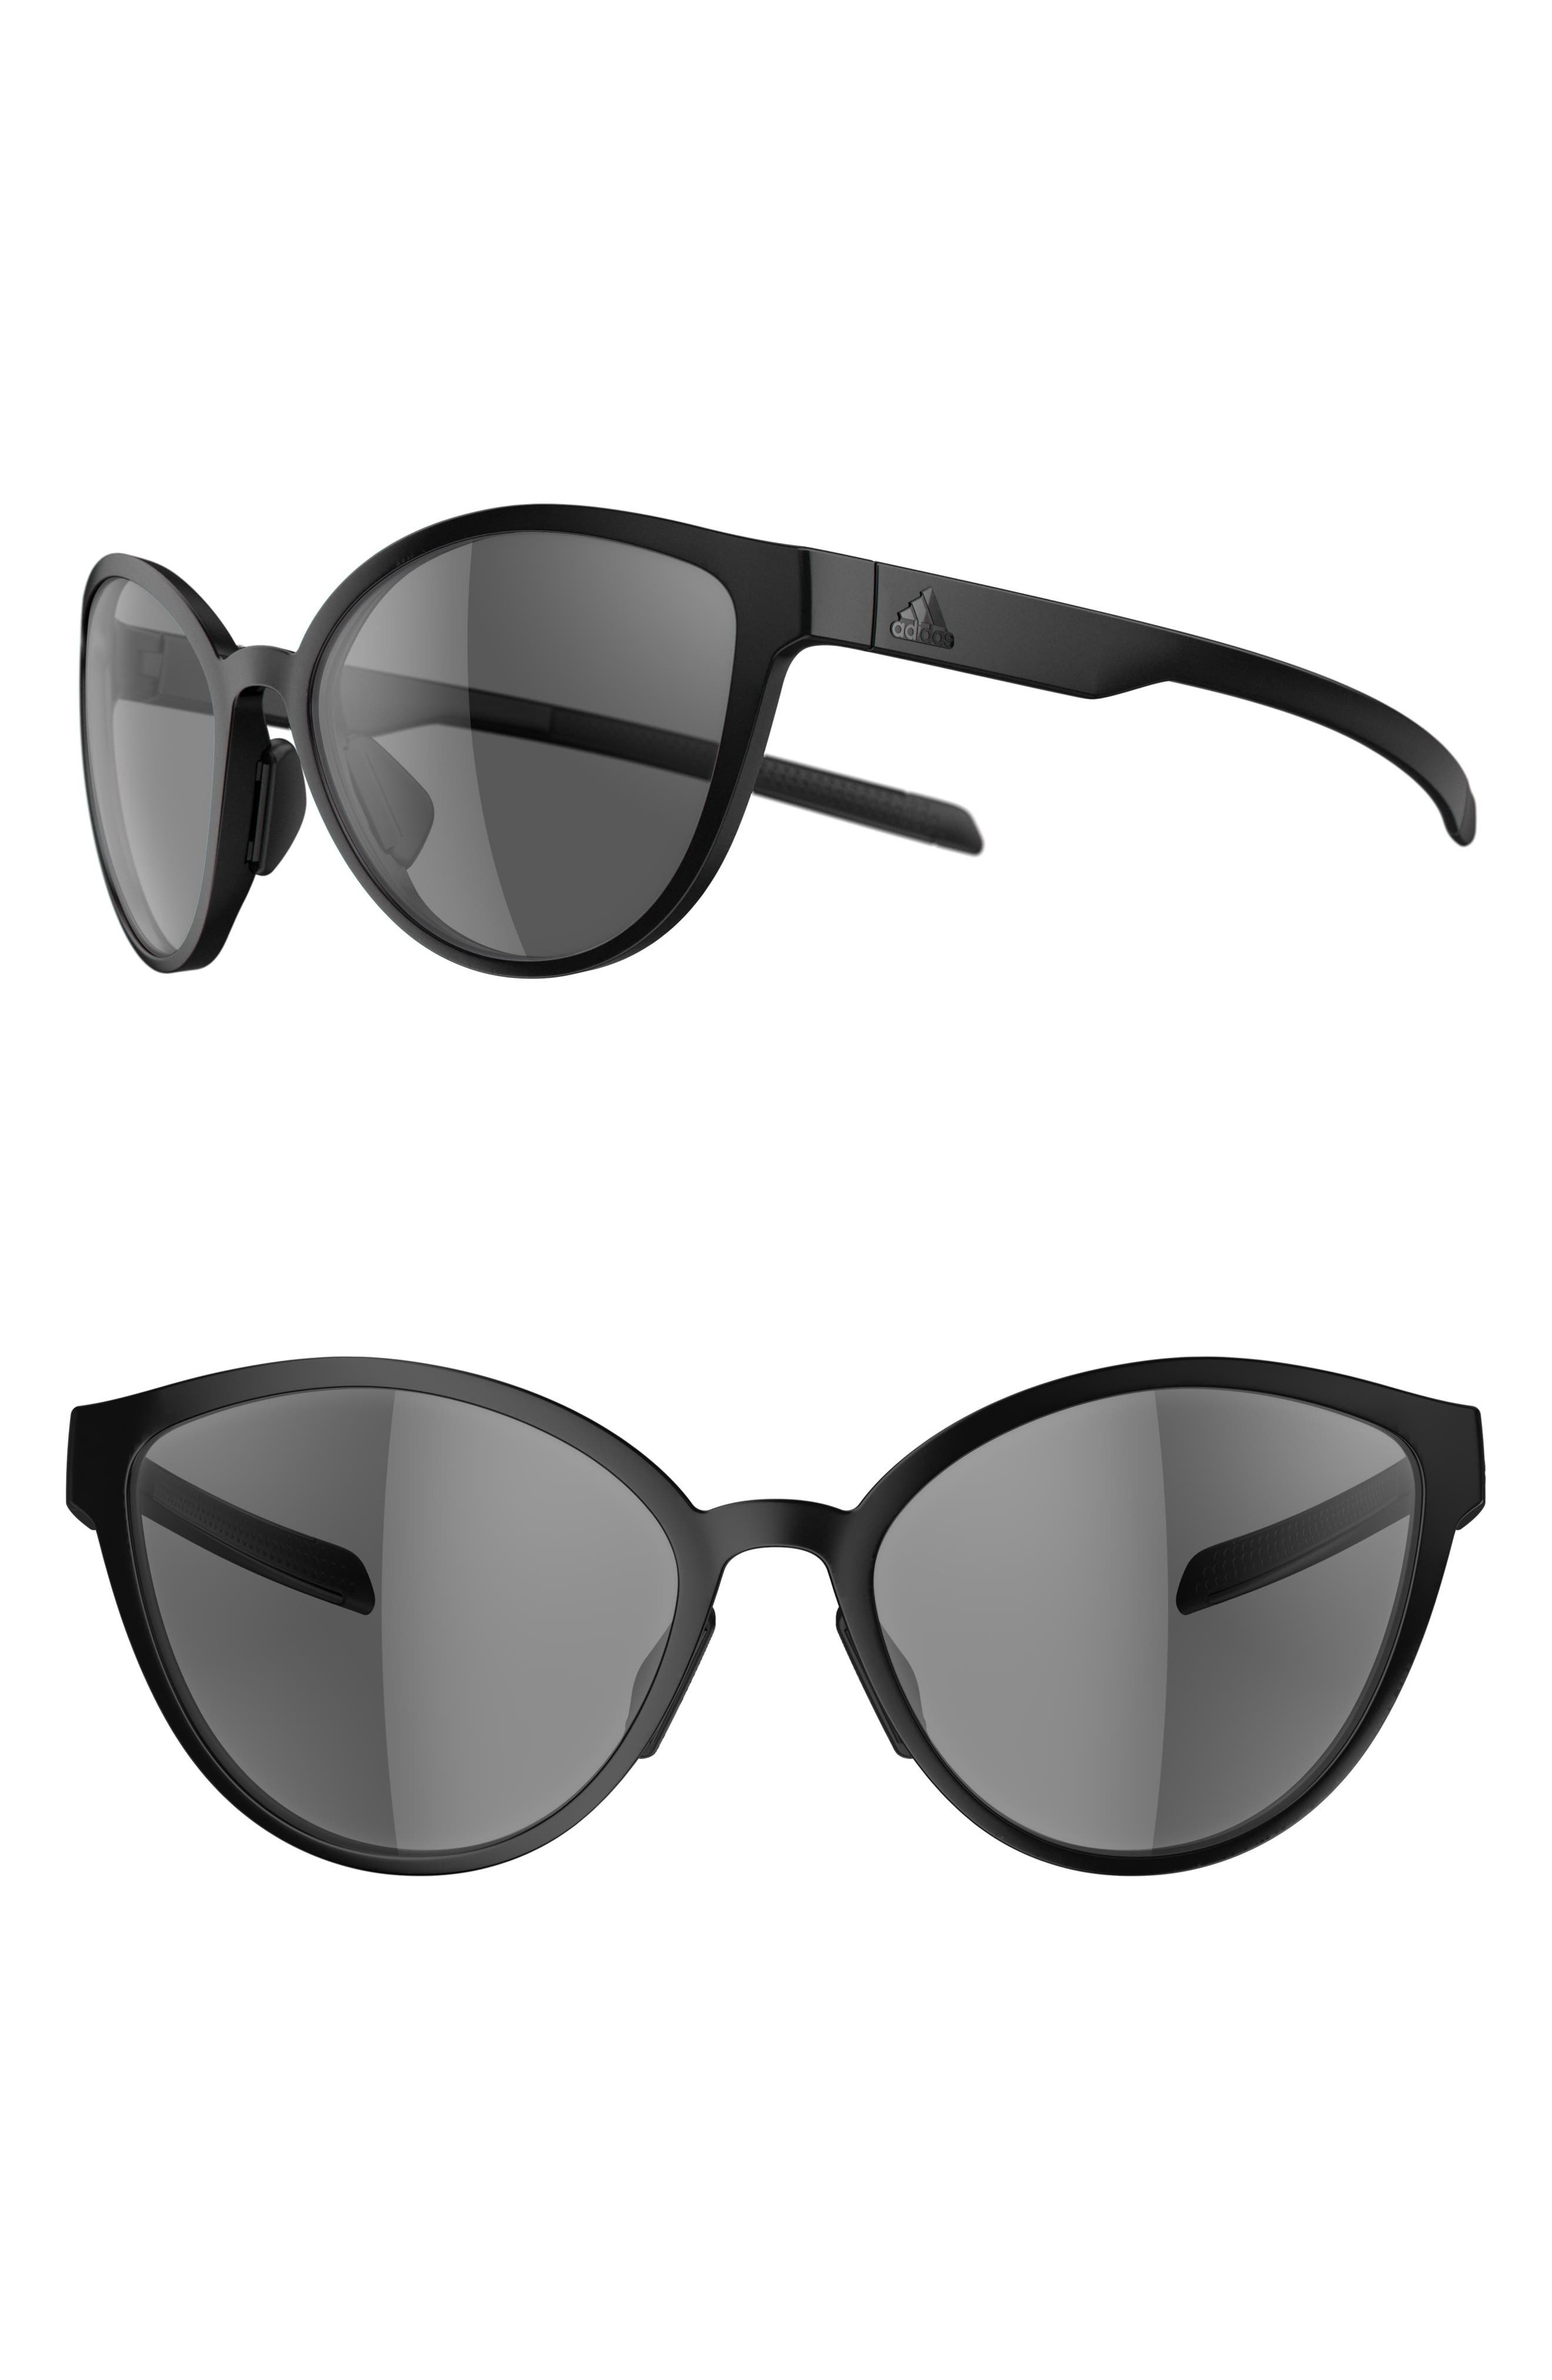 Tempest 56mm Running Sunglasses,                         Main,                         color, BLACK MATTE/ GREY